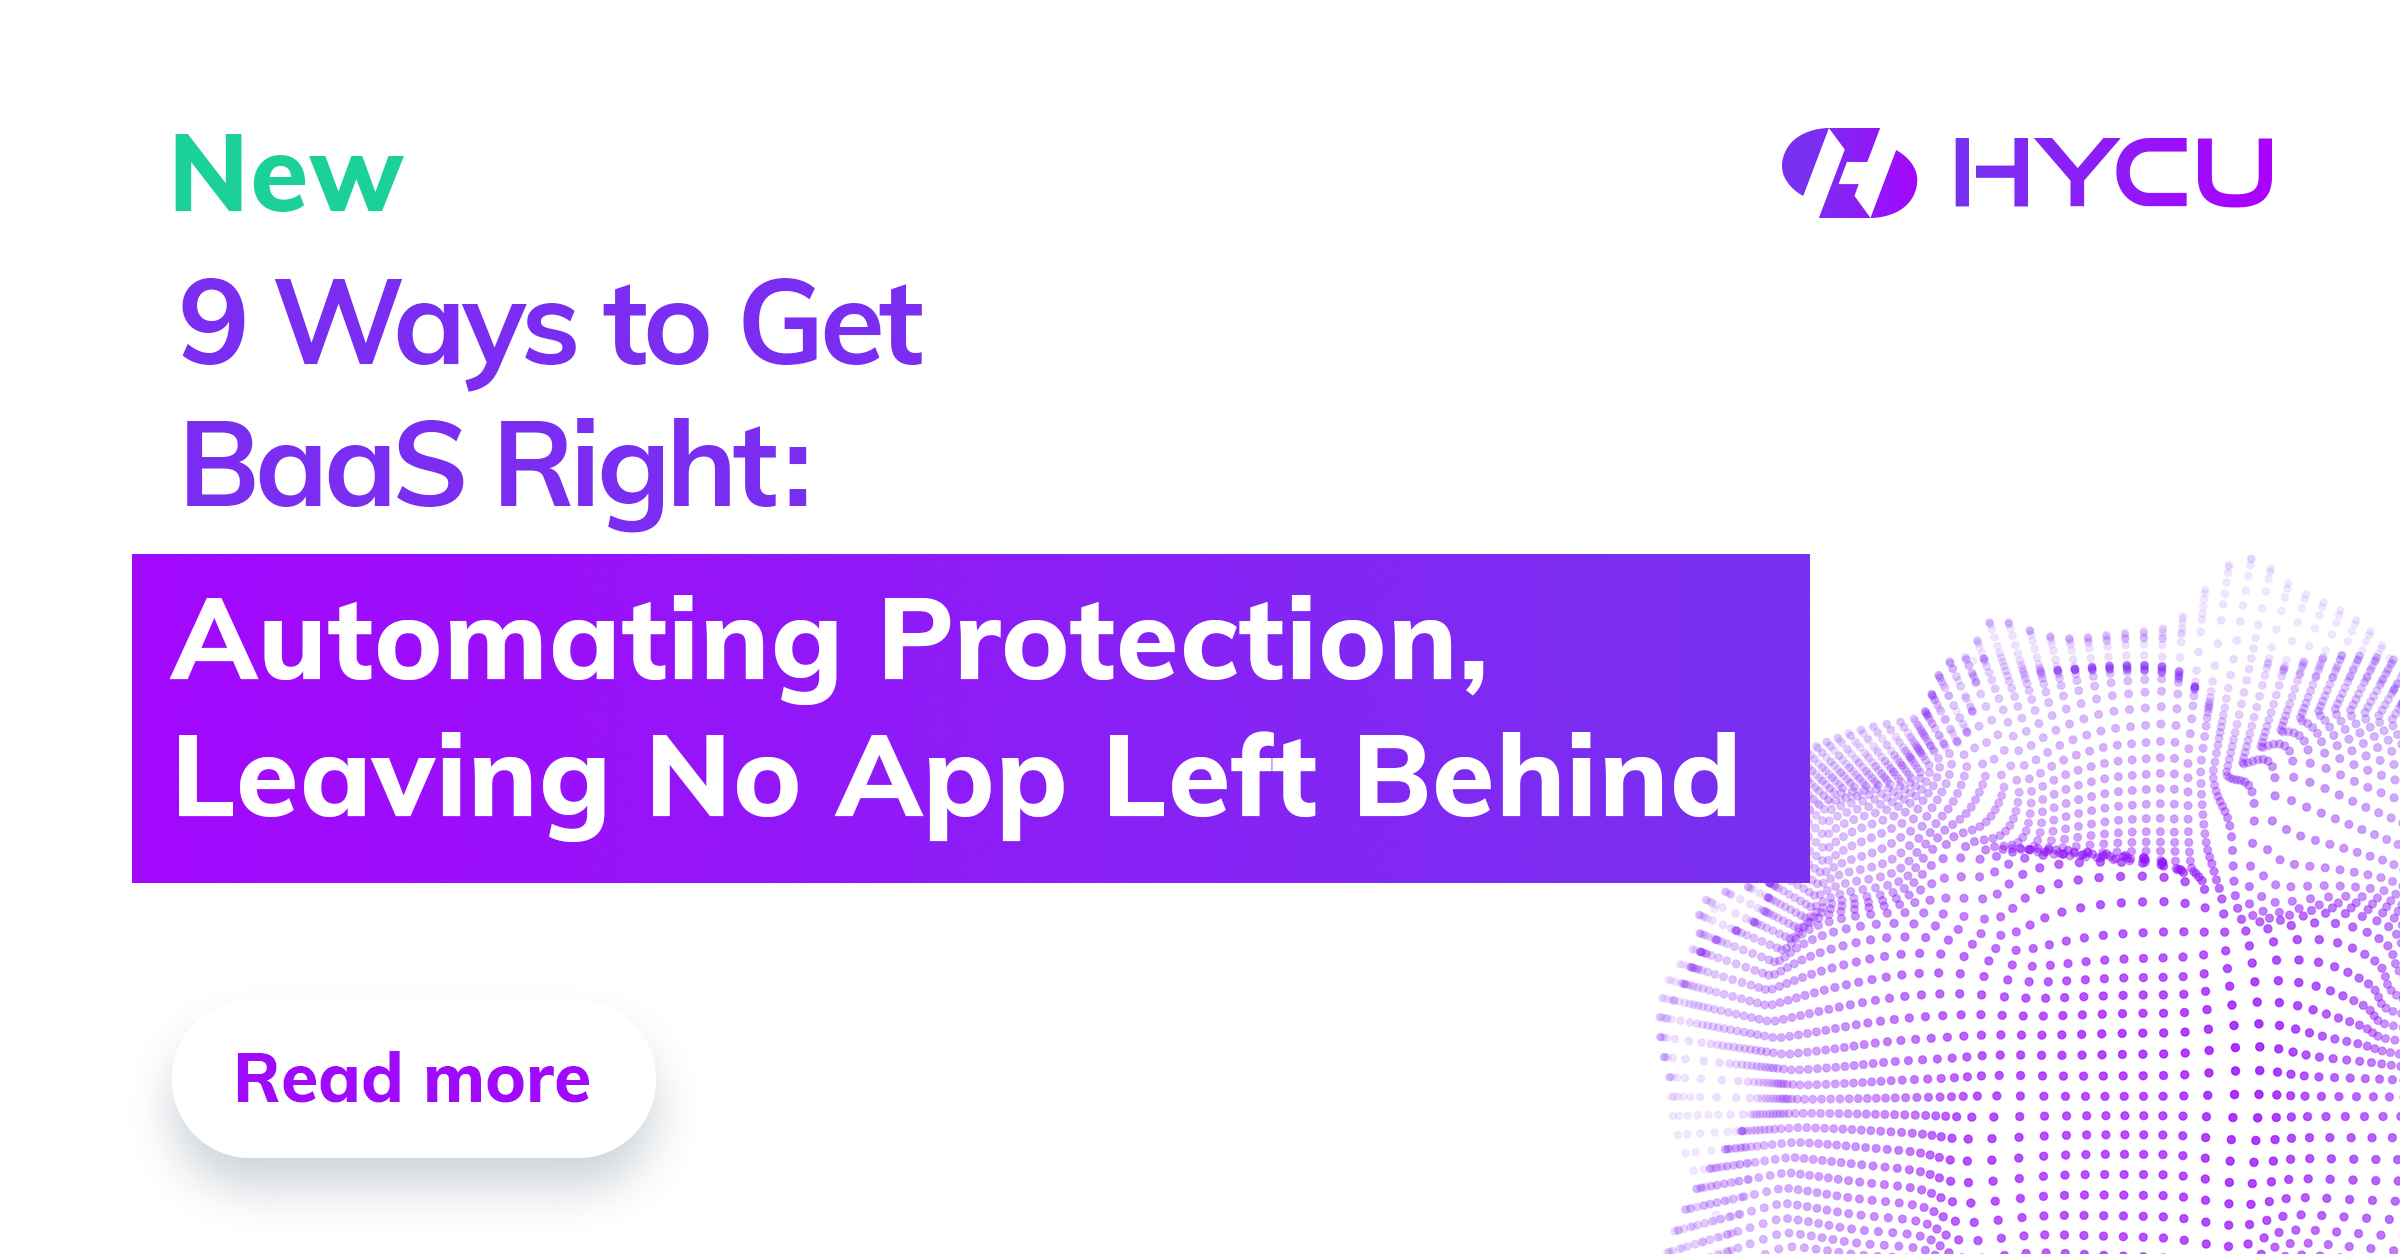 Here are two main things to consider when selecting a BaaS solution: Automating Protection and Applications.